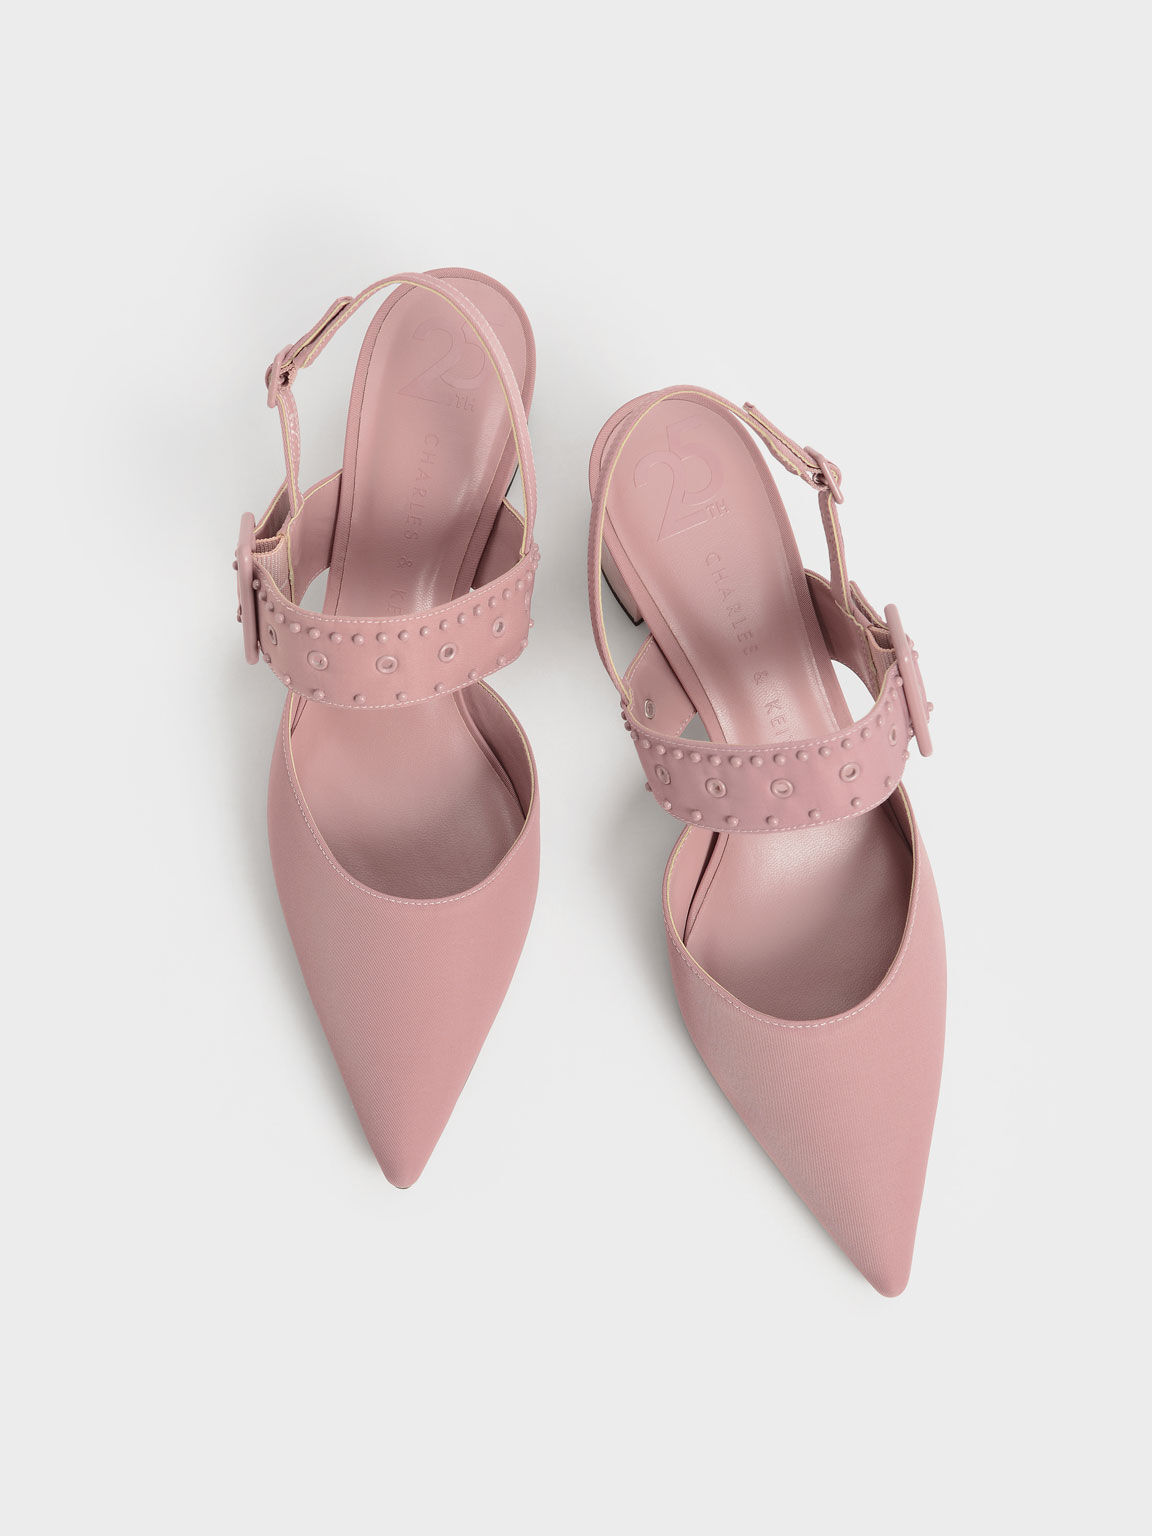 The Anniversary Series: Sepphe Recycled Nylon Grommet Slingback Pumps, Pink, hi-res